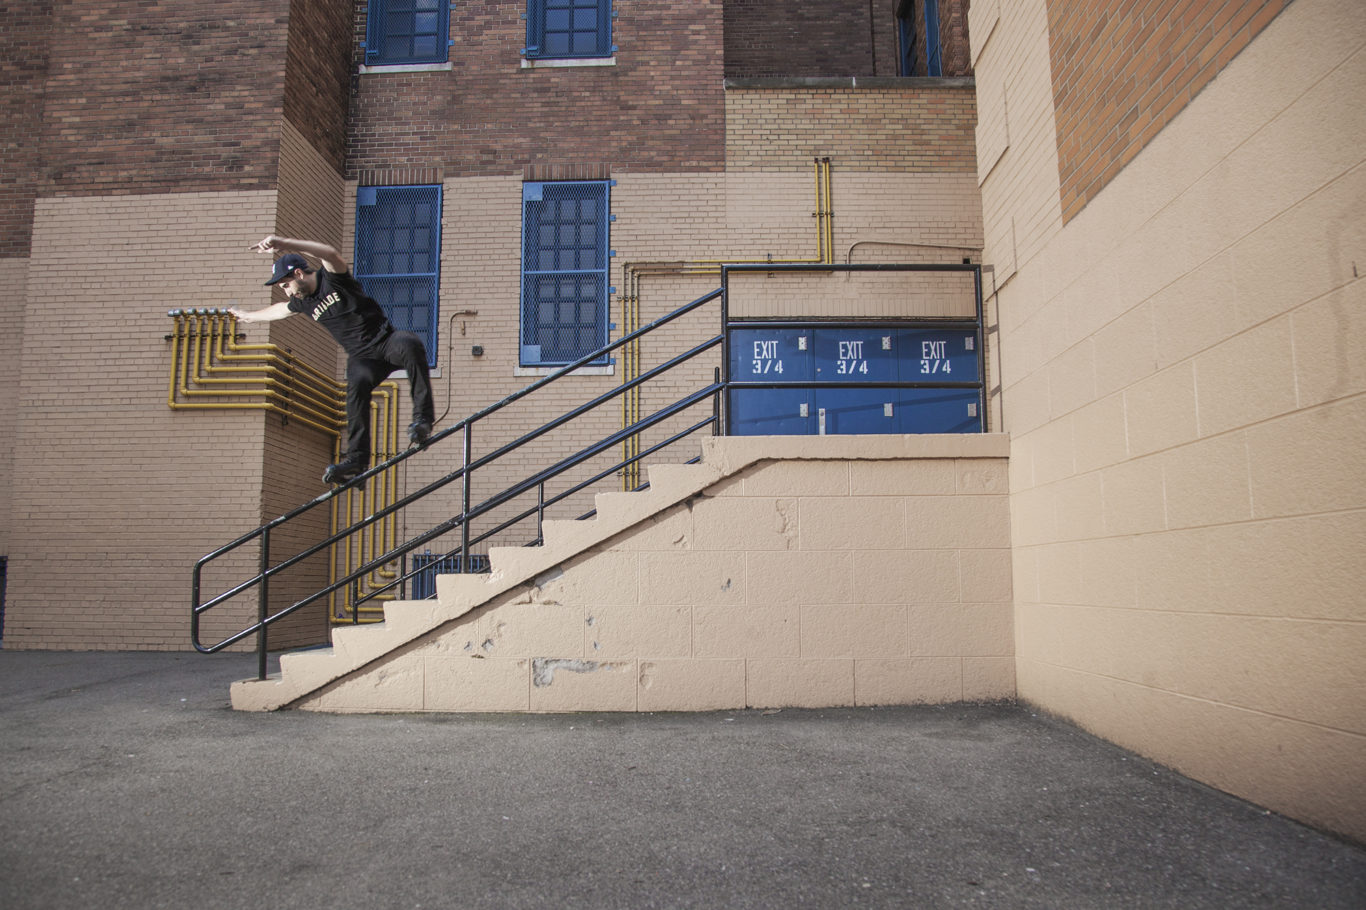 SWITCH FRONT  ROYALE - SUNNYSIDE QUEENS, NY - PHOTOGRAPH BY RYAN LOEWY FOR BE-MAG